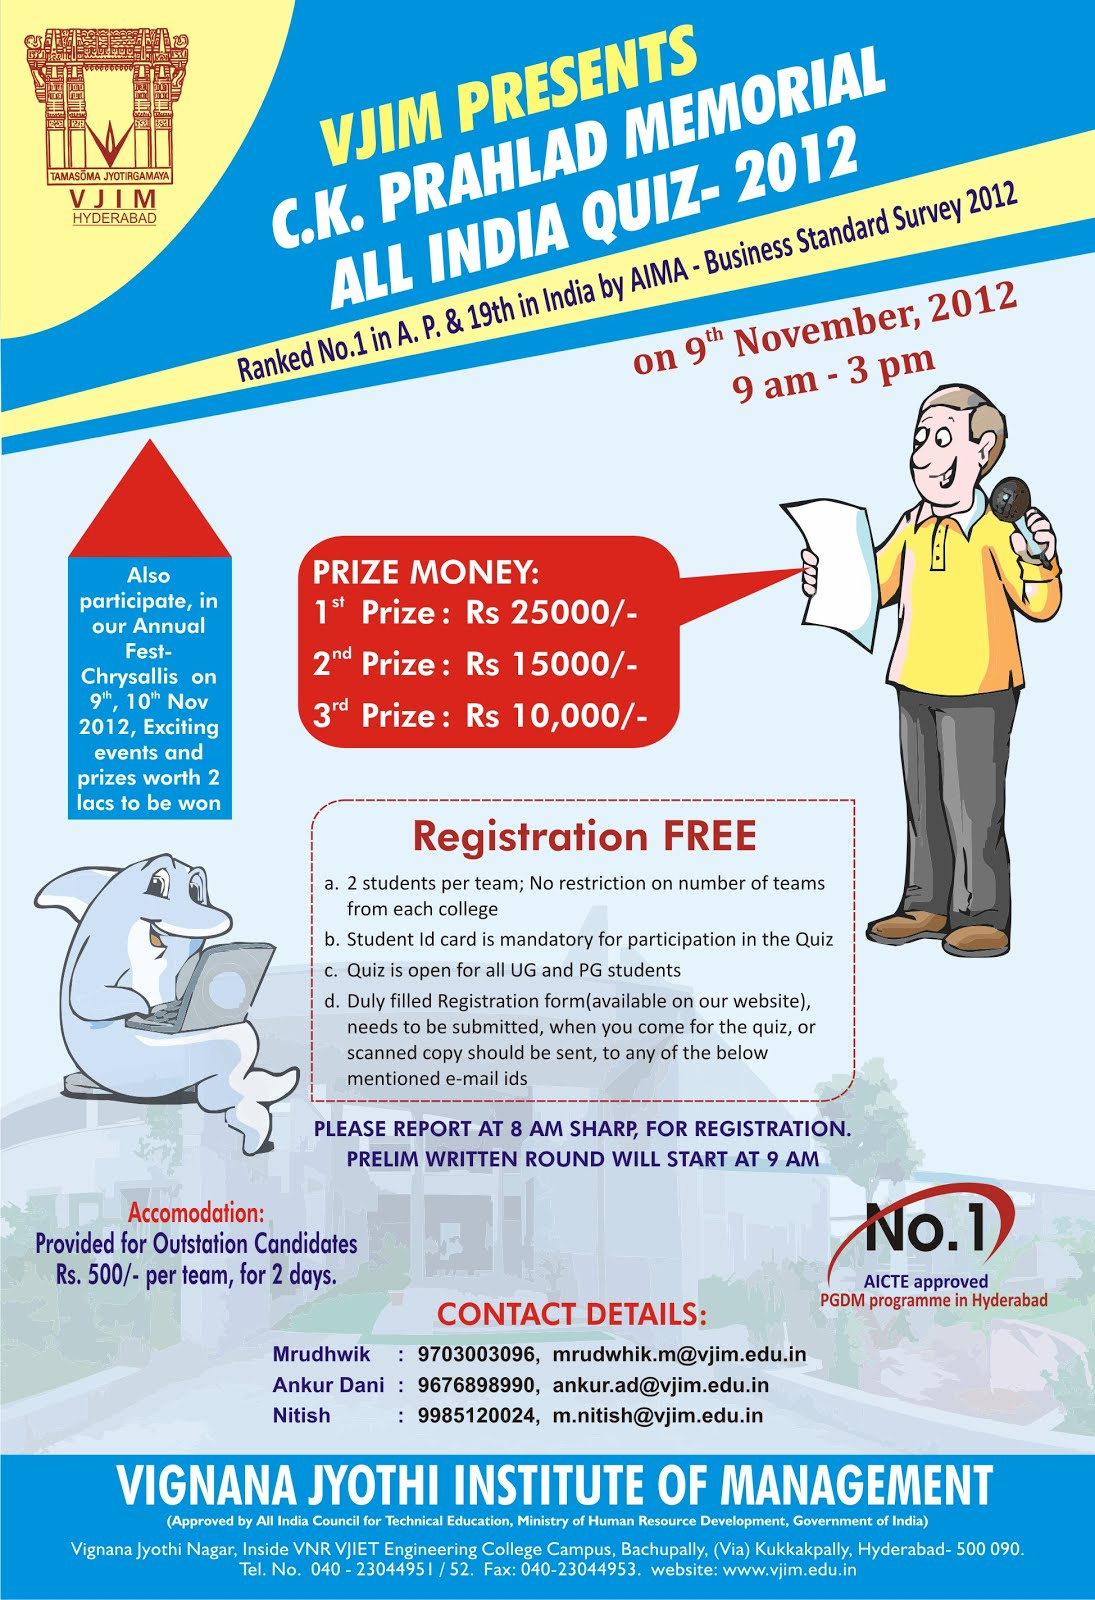 MTC Global] FW: ALL INDIA QUIZ COMPETITION- VJIM | College